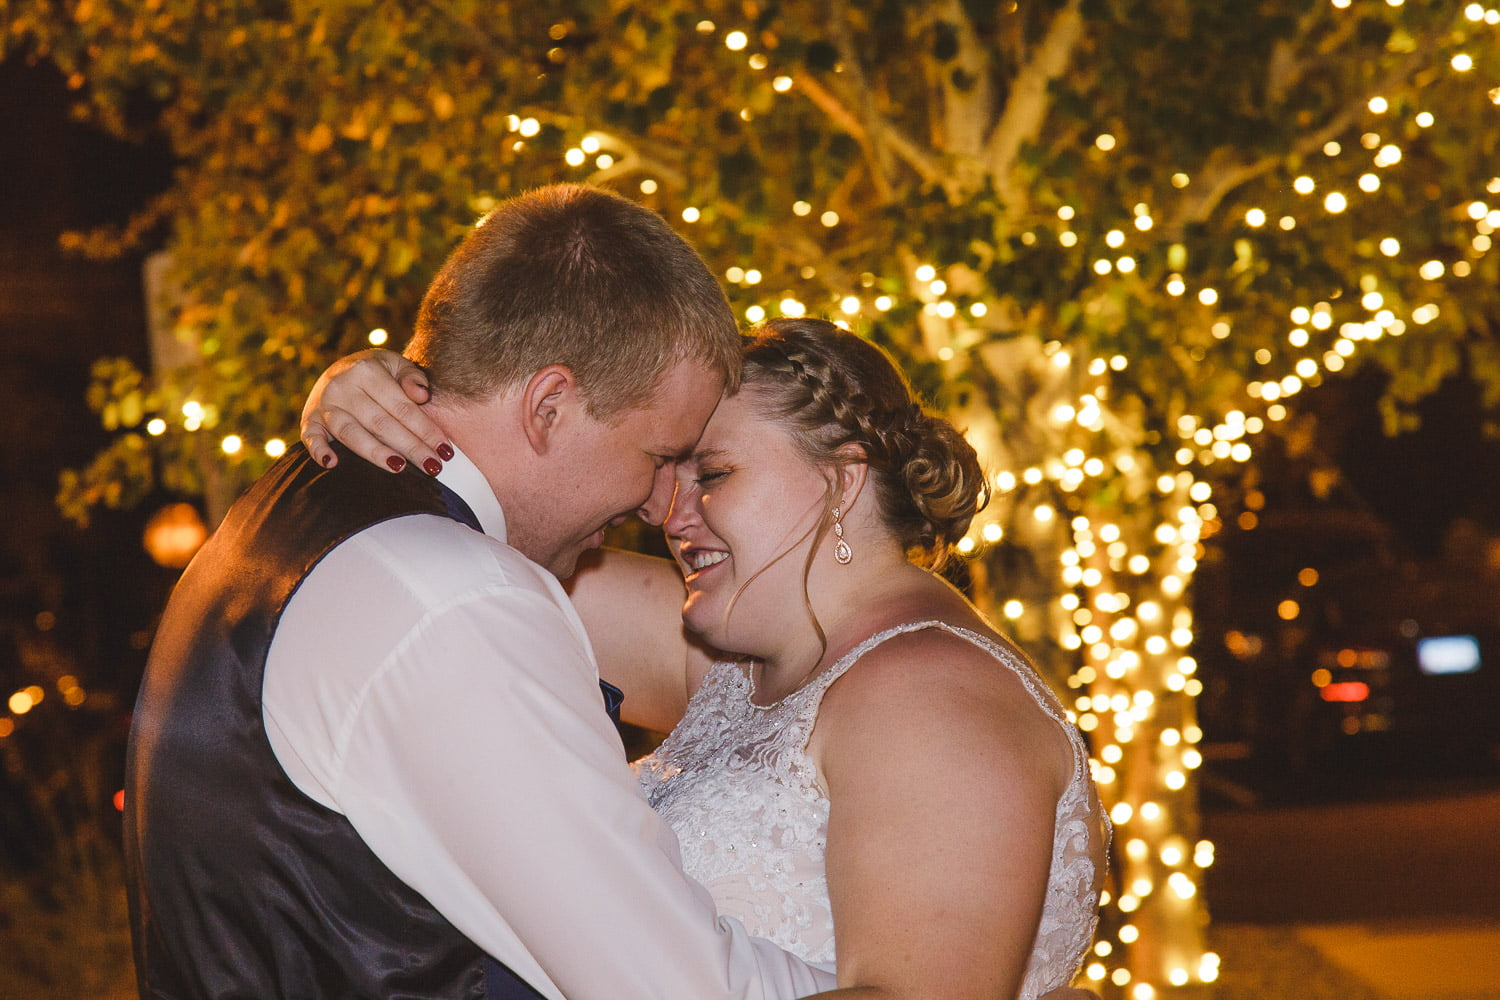 bunker hills event center wedding photography at night